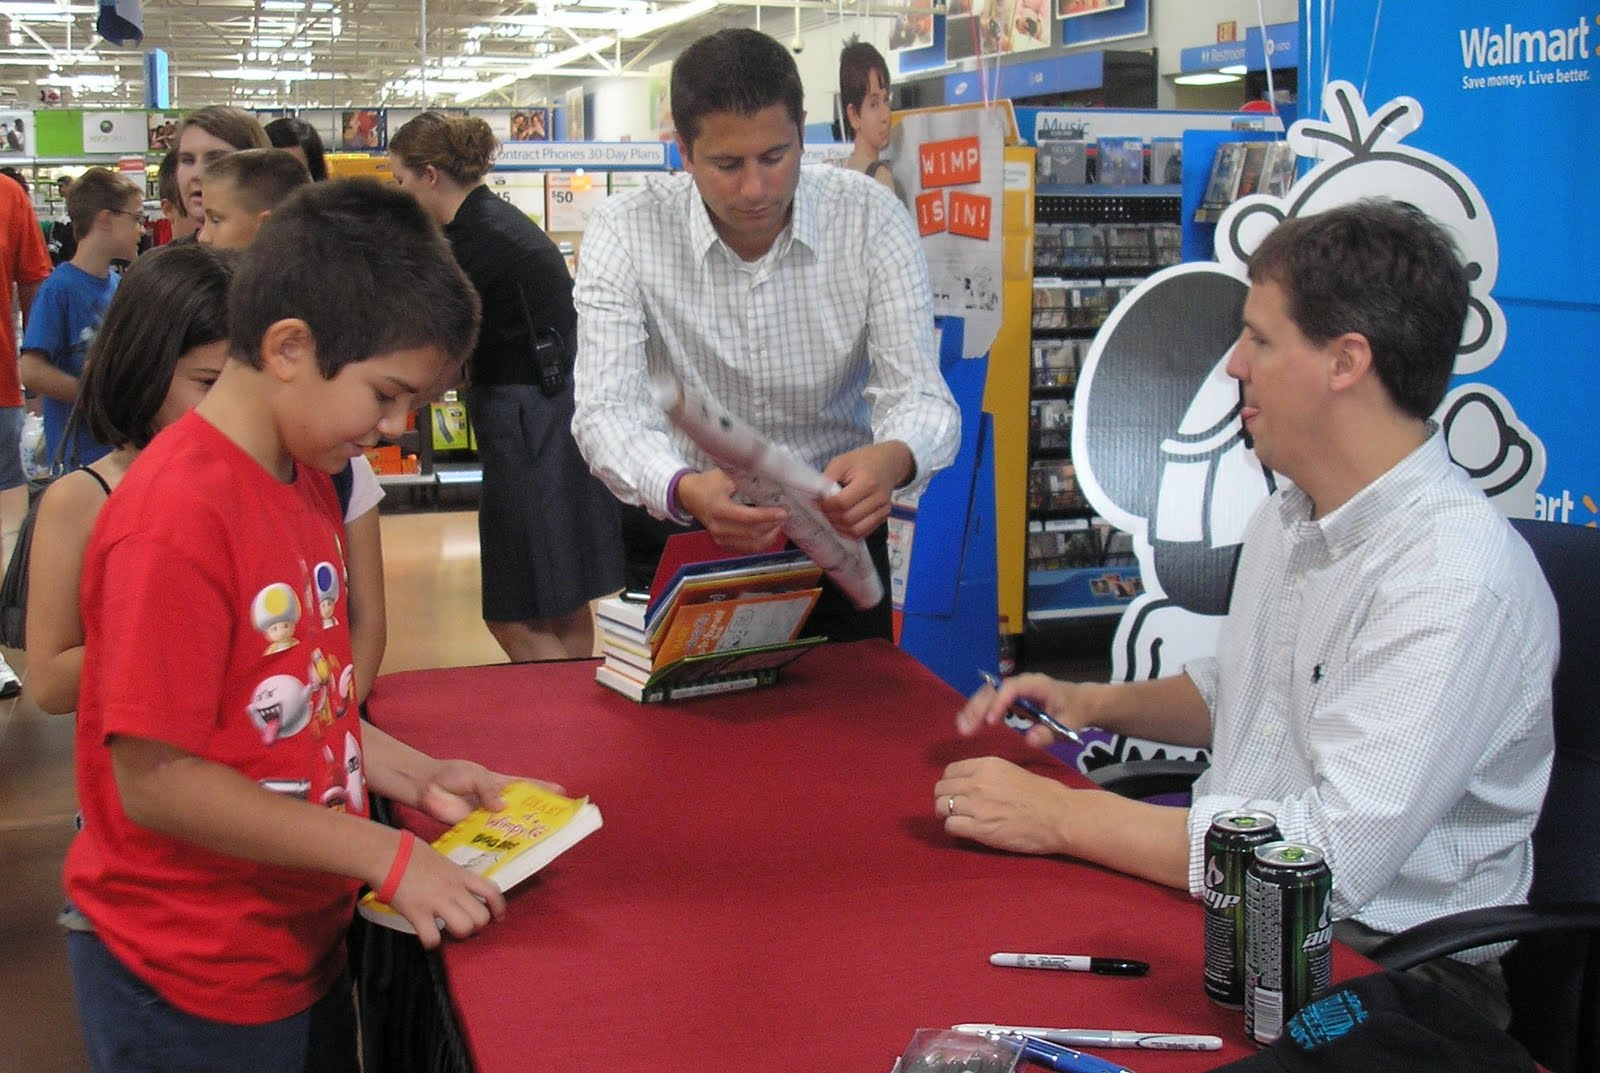 Mrs buntings class blog what a wimp jeff kinney author of the diary of a wimpy kid books and creator of poptropica held a book signing at walmart in rogers solutioingenieria Image collections